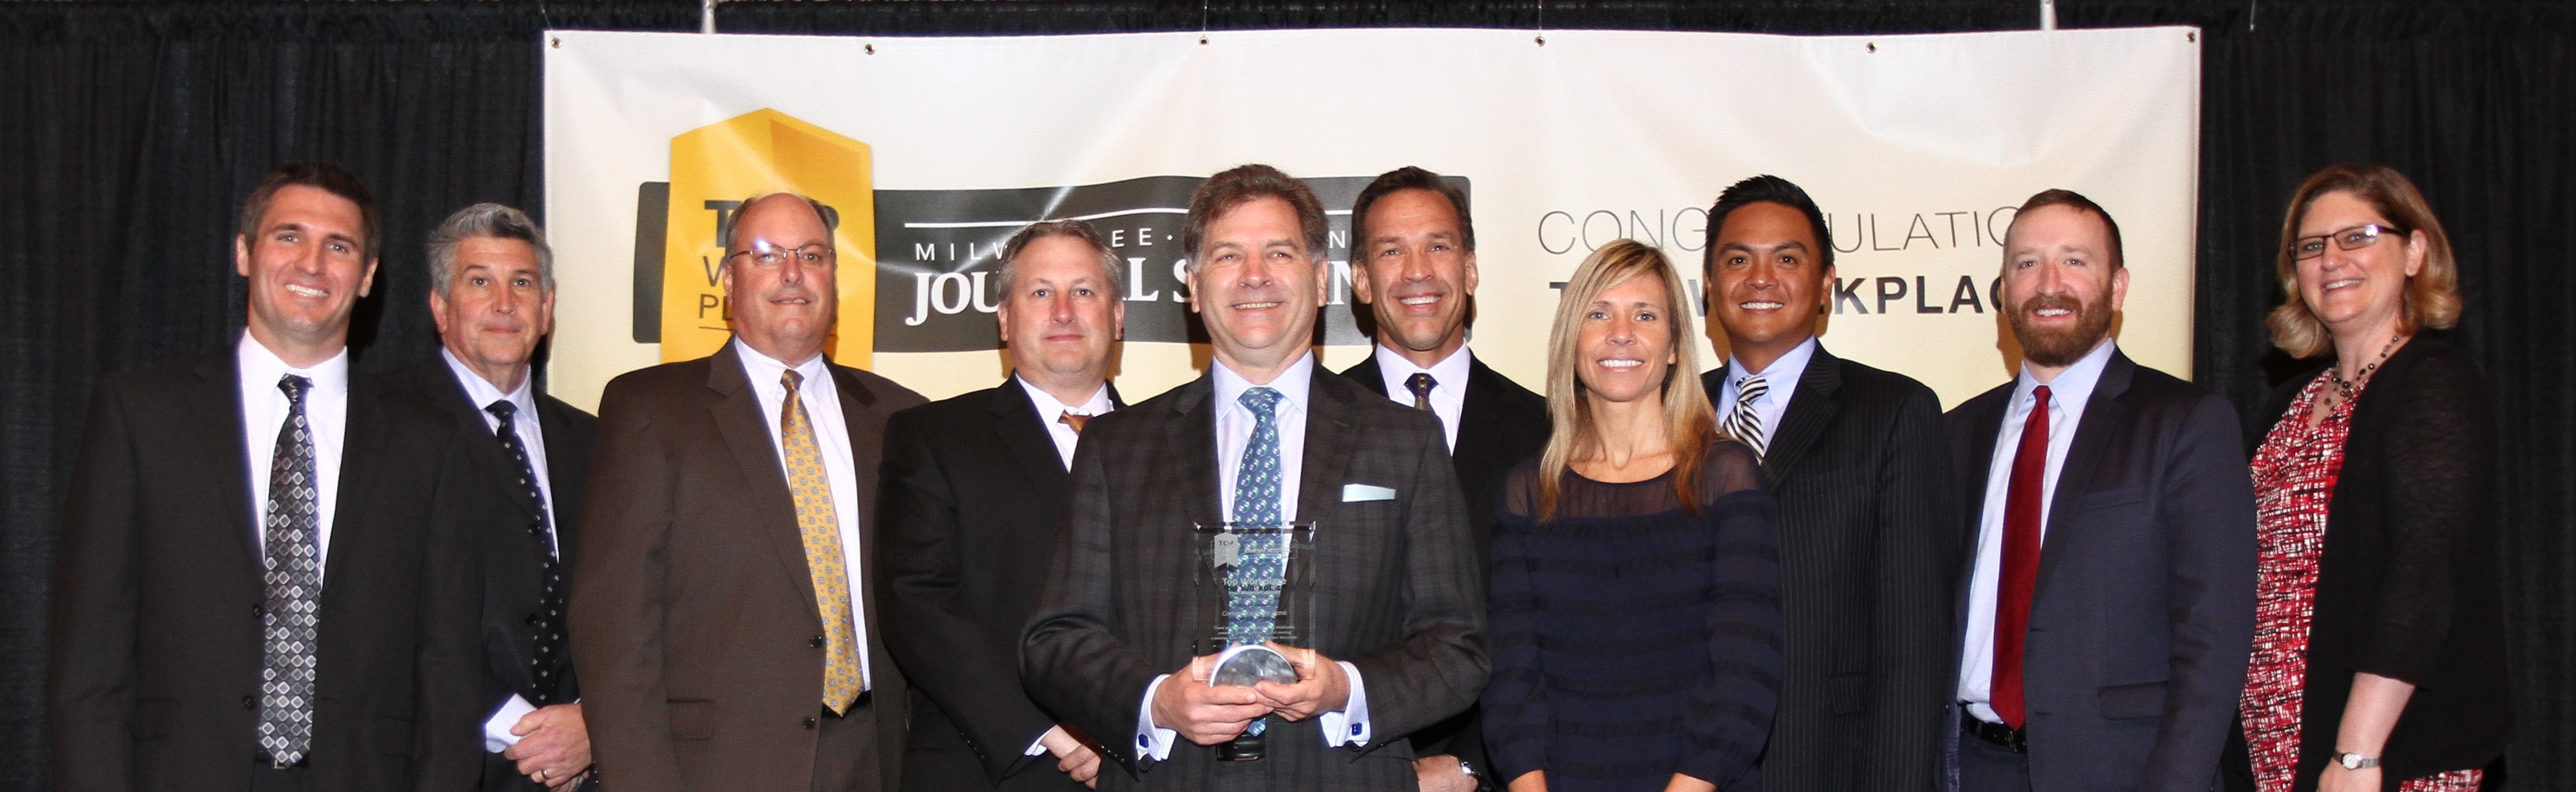 Ten employees from Commerce State Bank accepts award for Milwaukee Journal Sentinel Top Workplace.